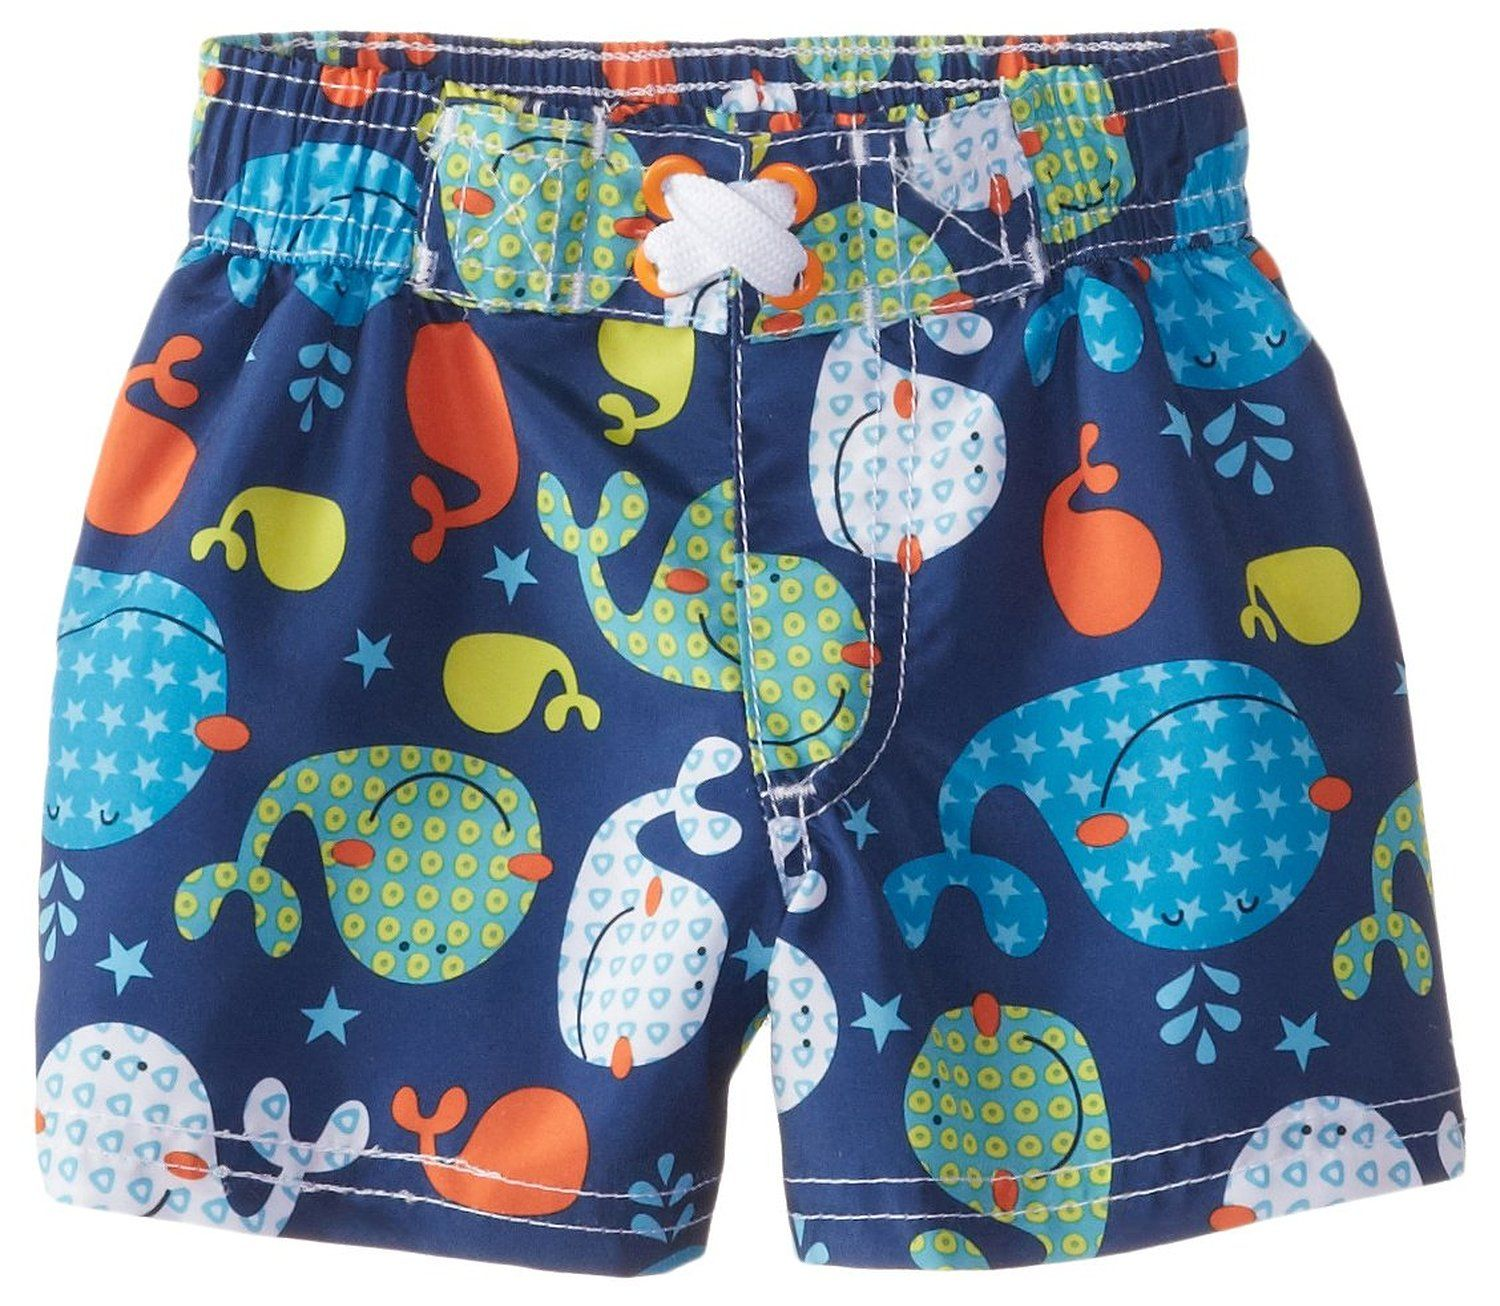 Sears Baby Clothes Brilliant Whale Swim Trunks At Sears $11  Baby  Clothes  Pinterest  Swim